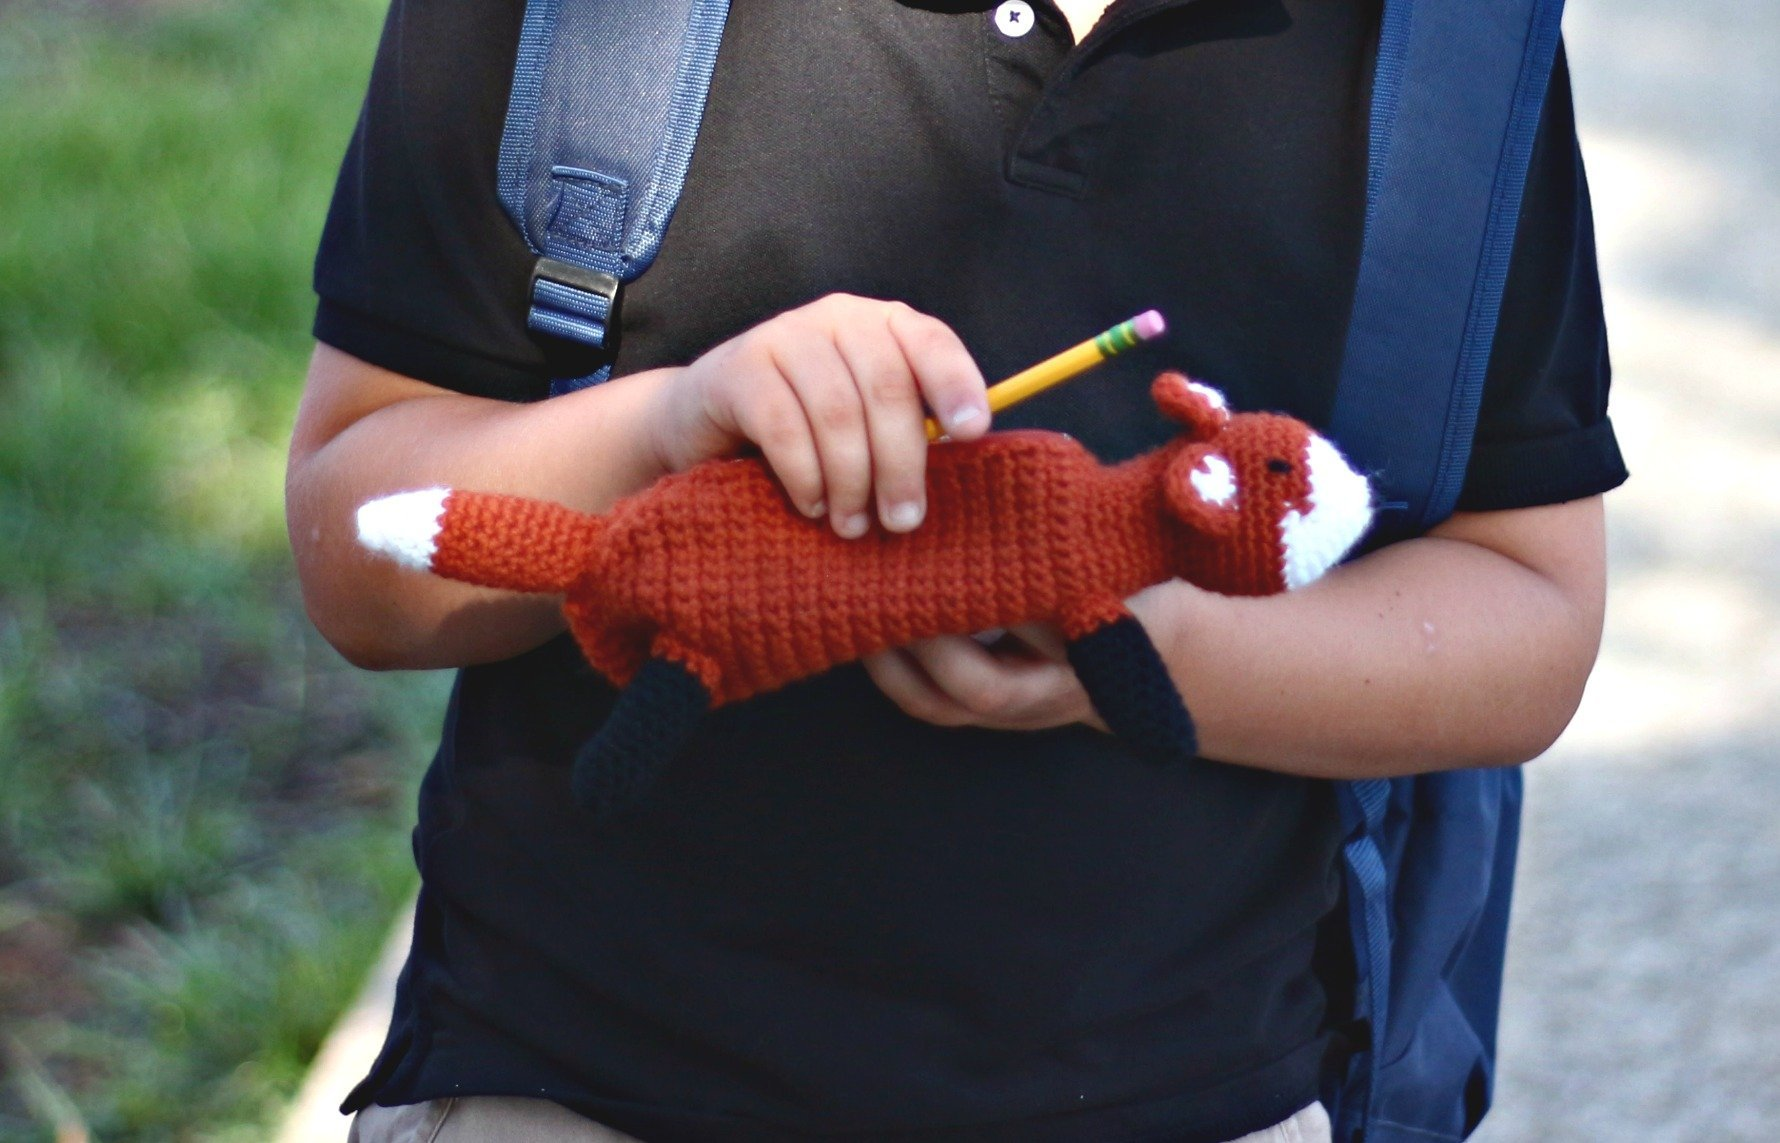 What a cute little pencil case! The fox pencil case is a FREE crochet pattern!